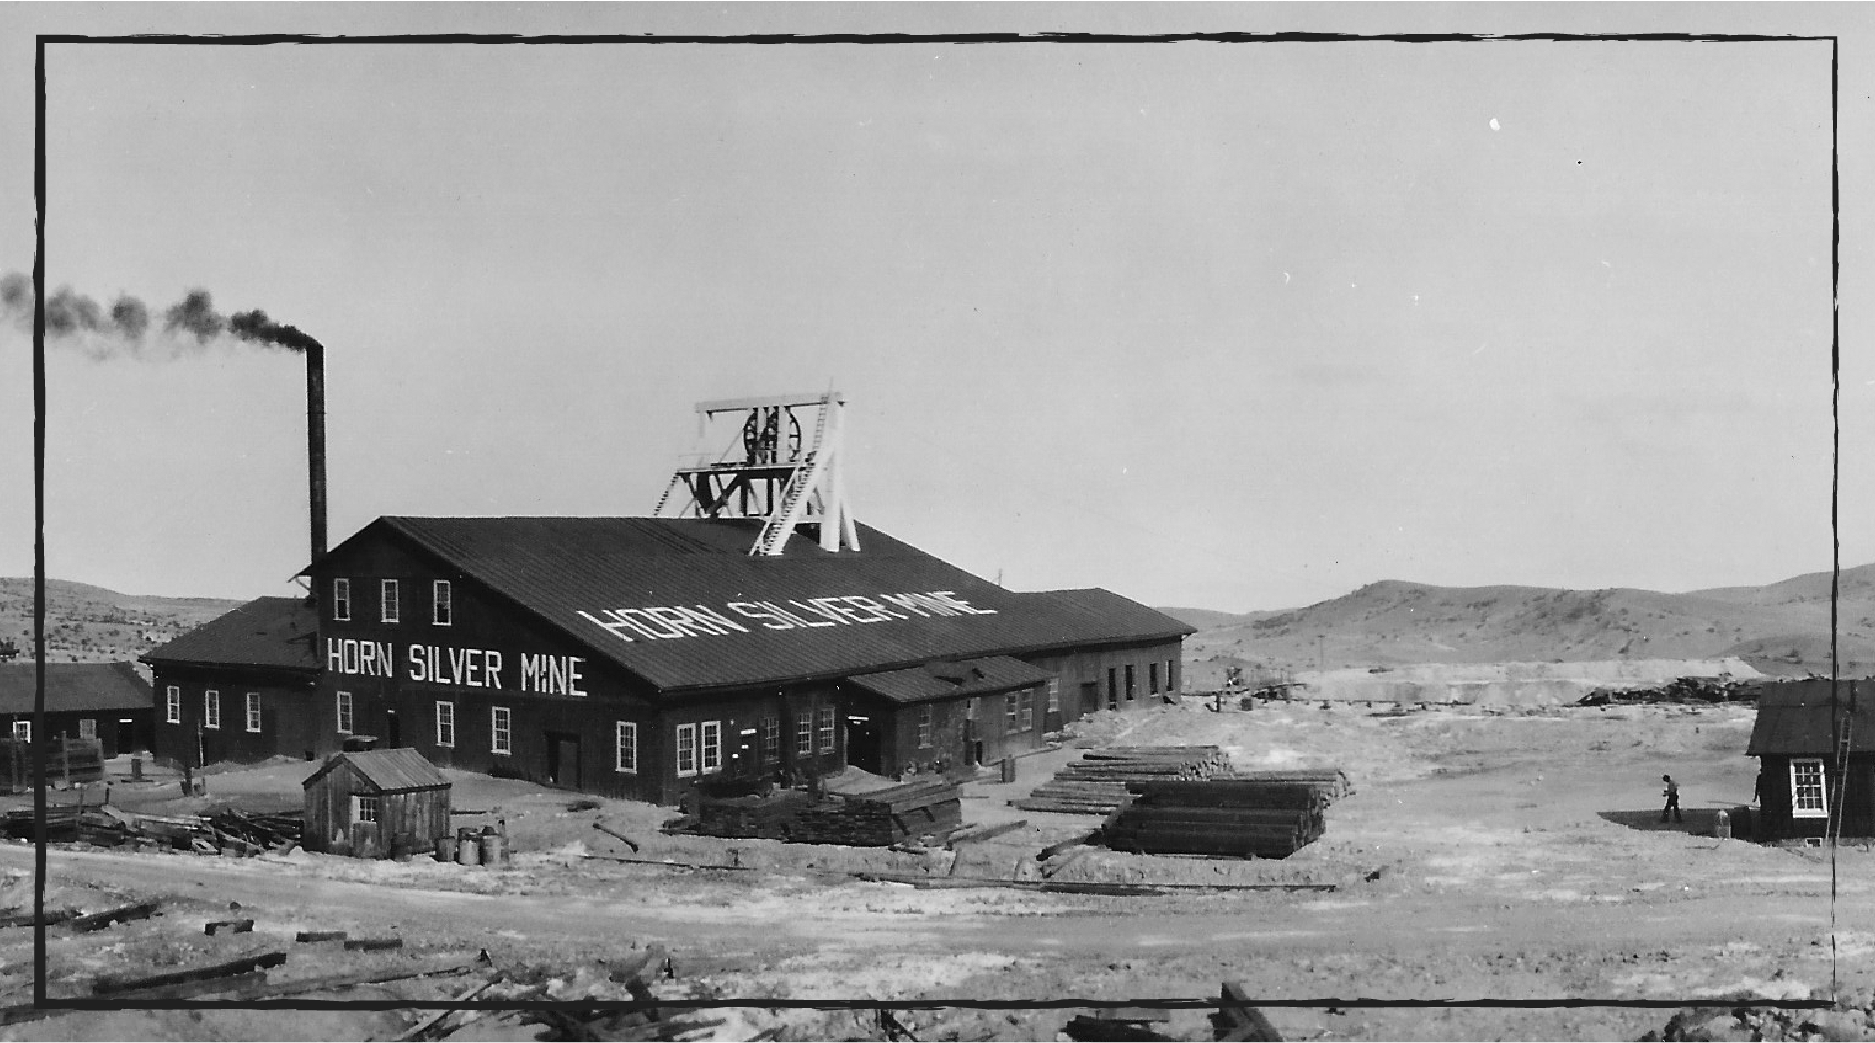 About - Horn Silver Mines, Inc. was incorporated under the laws of the state of Utah in 1971.